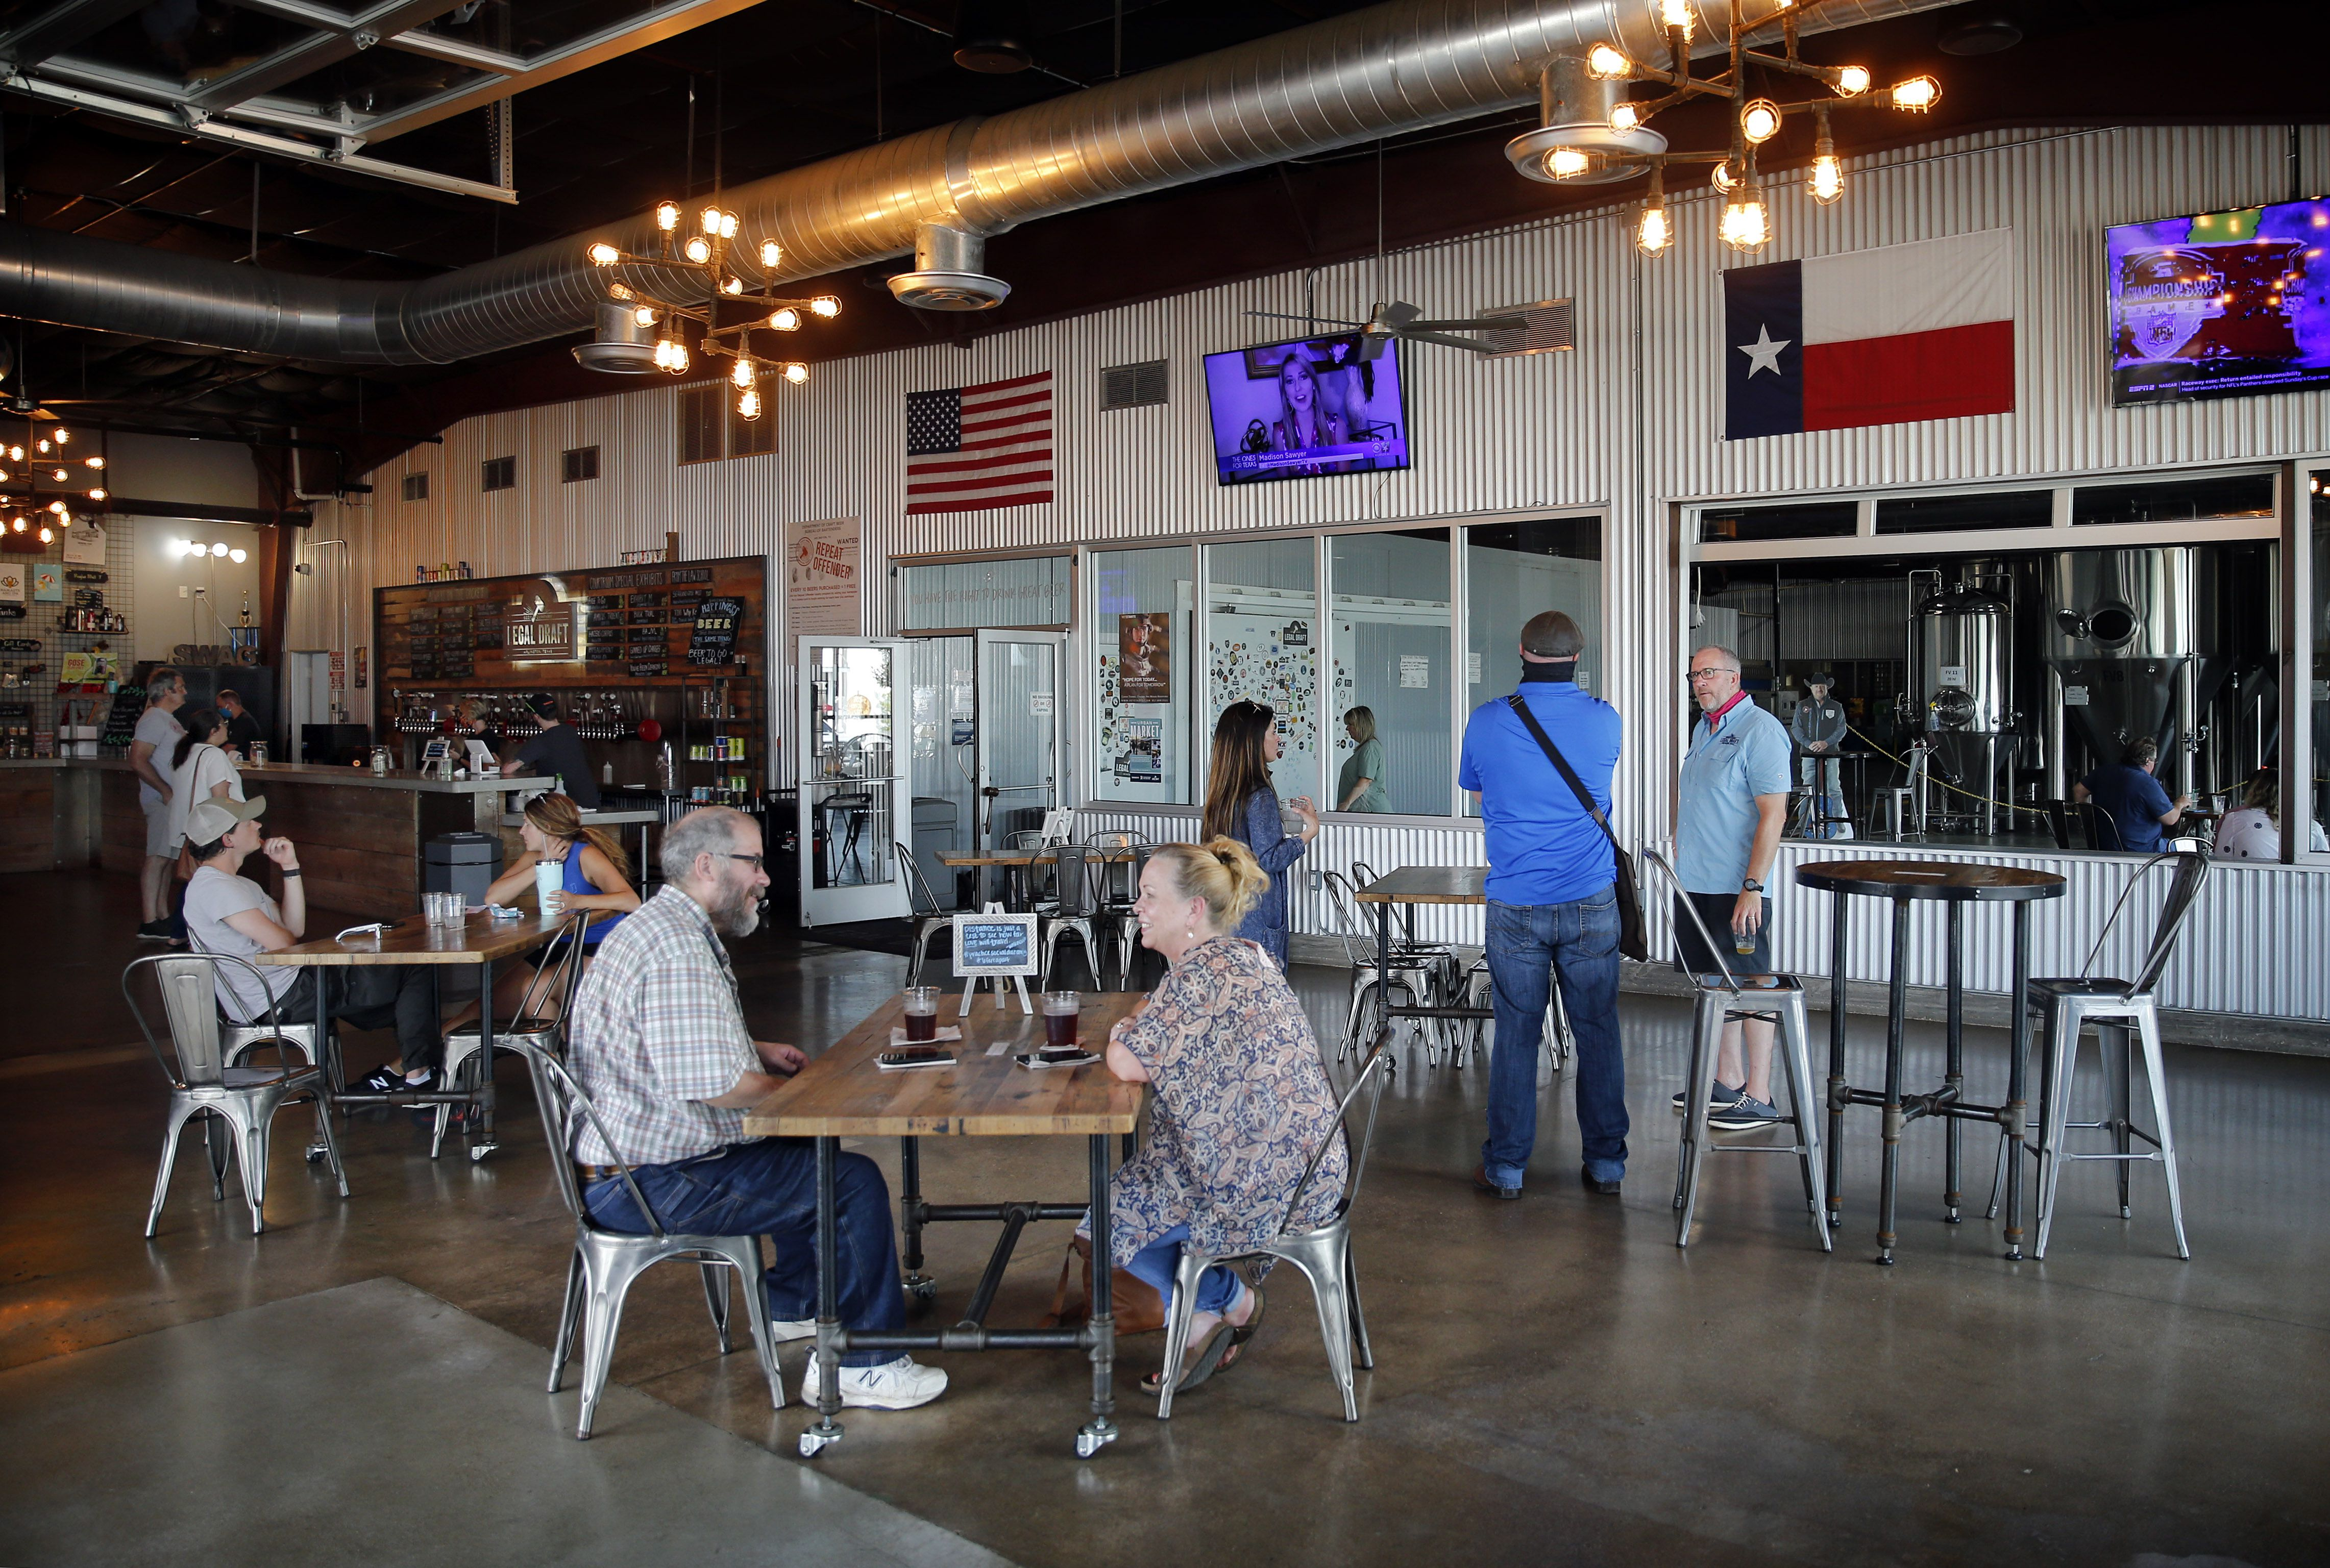 Bars And Breweries Reopen In North Texas With Relieved Regulars Safety Protocols And Caution Tape